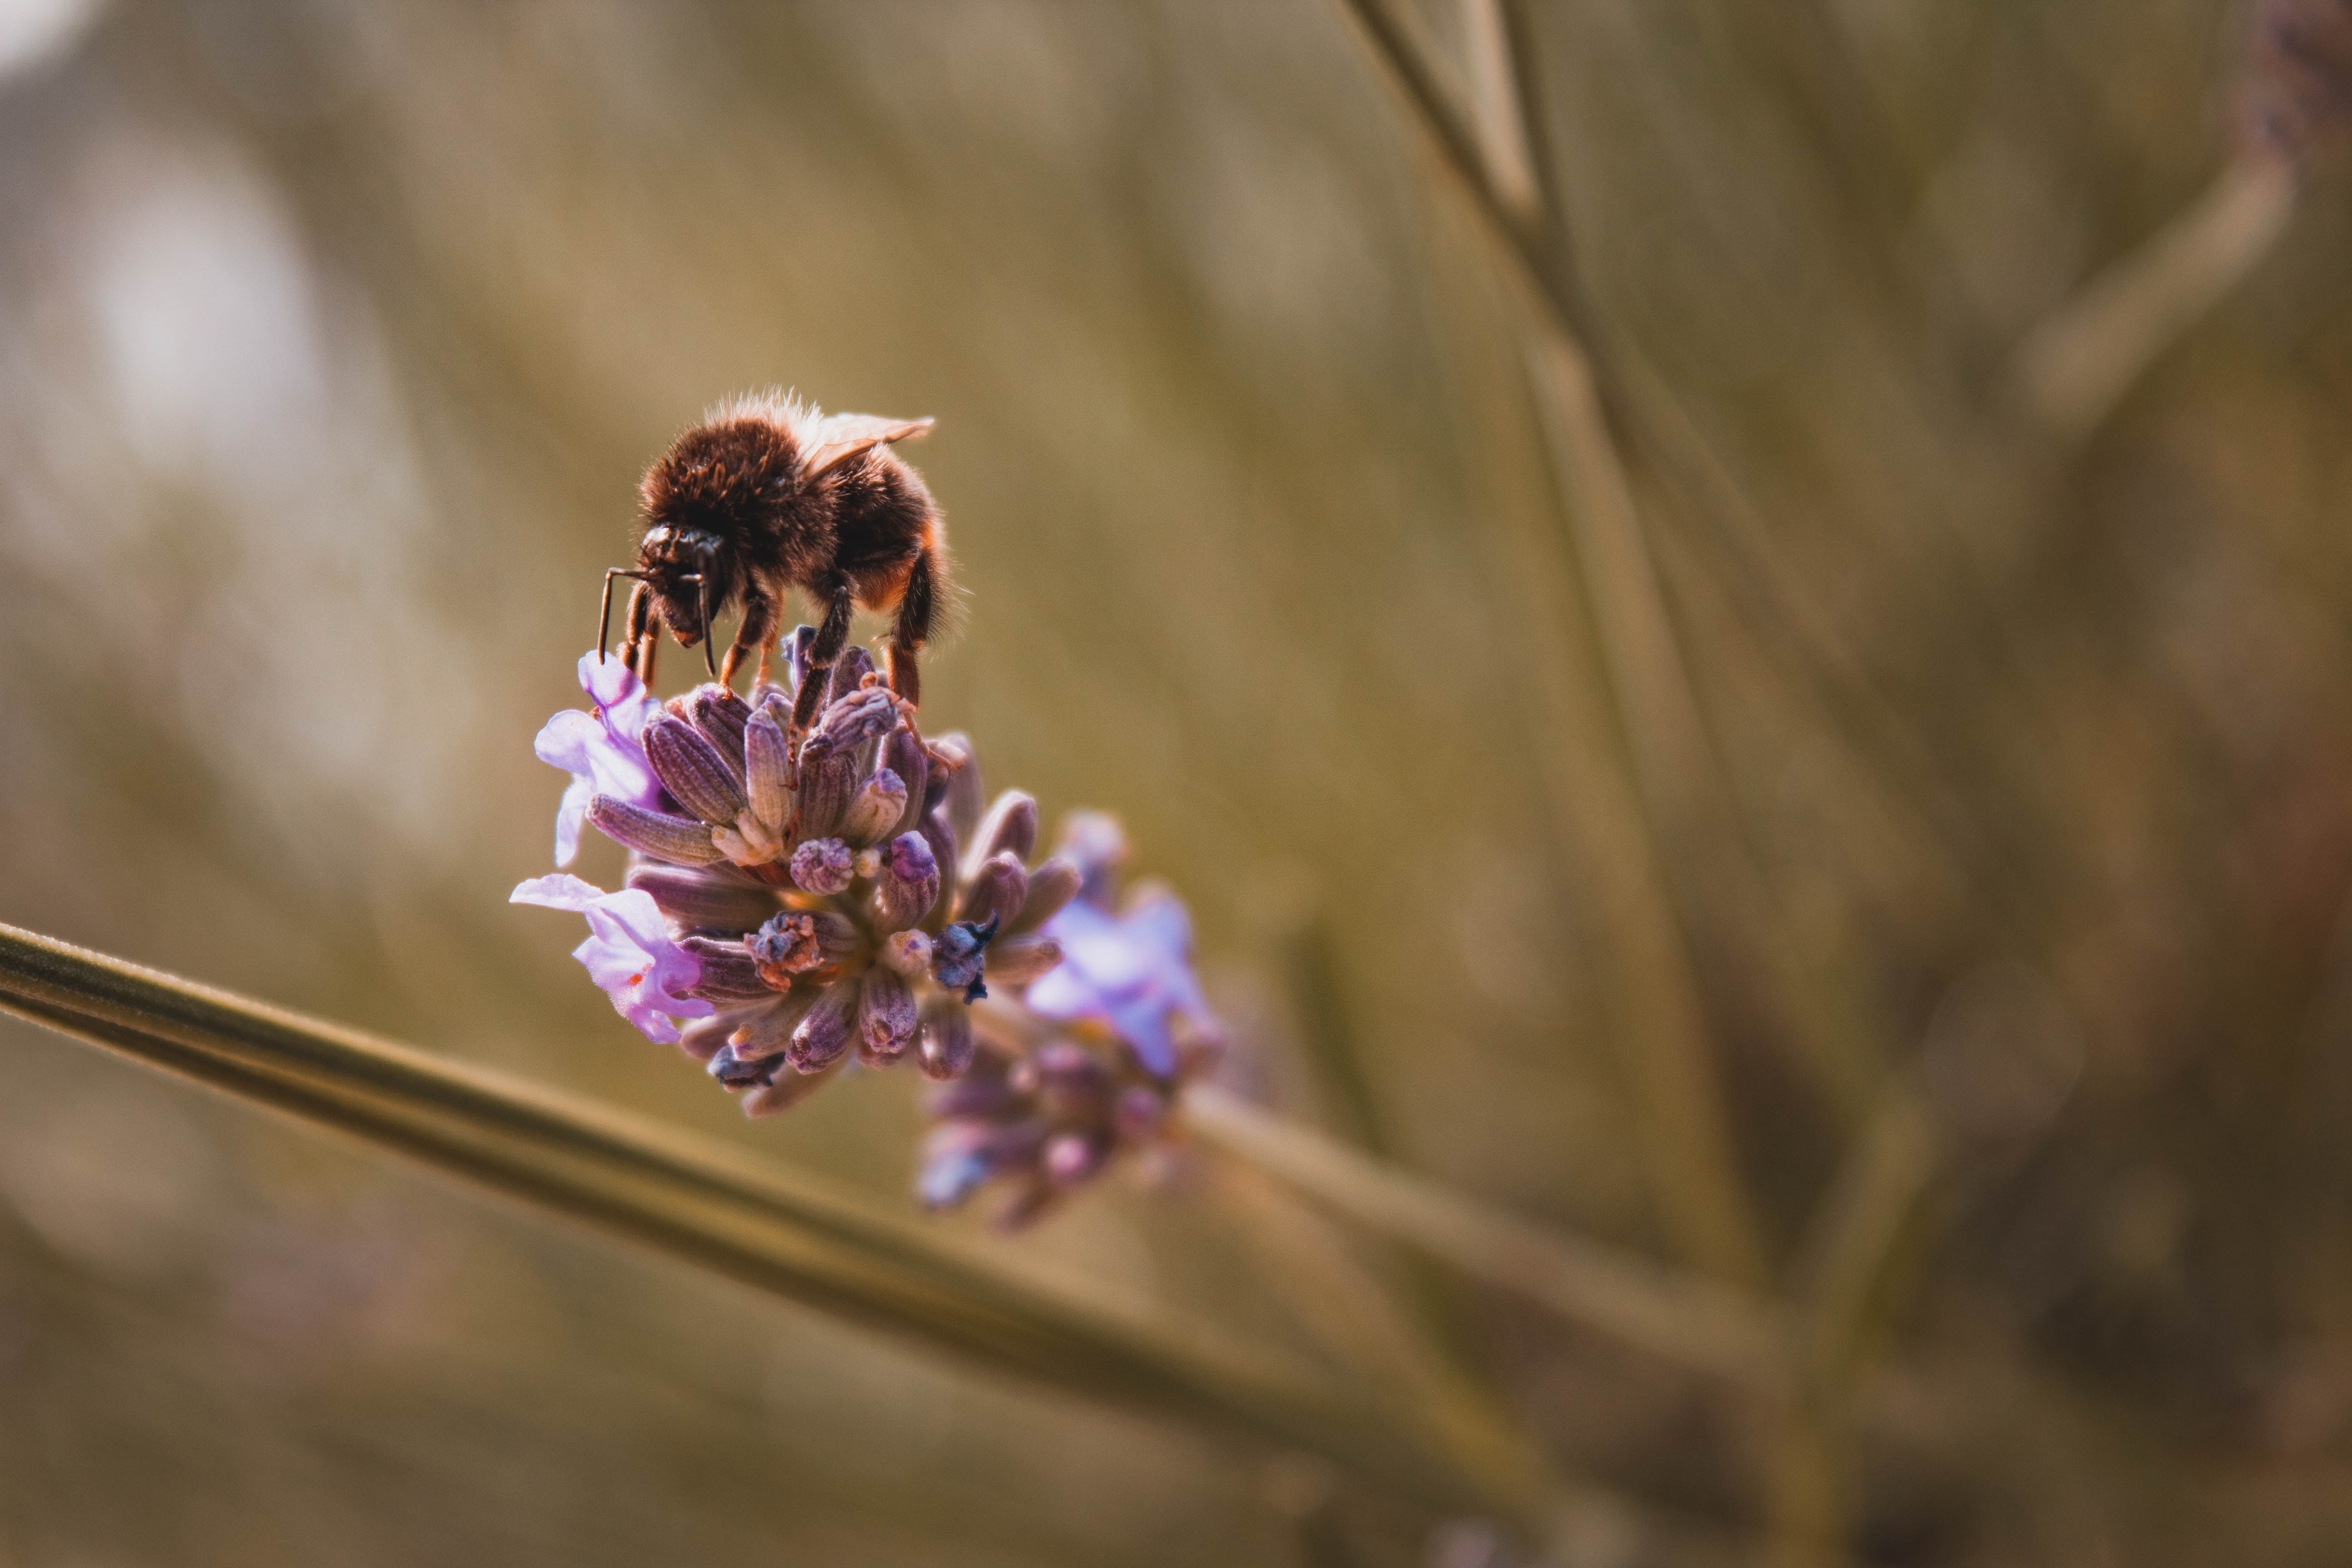 The BeeImage Dataset: Annotated Honey Bee Images   Kaggle